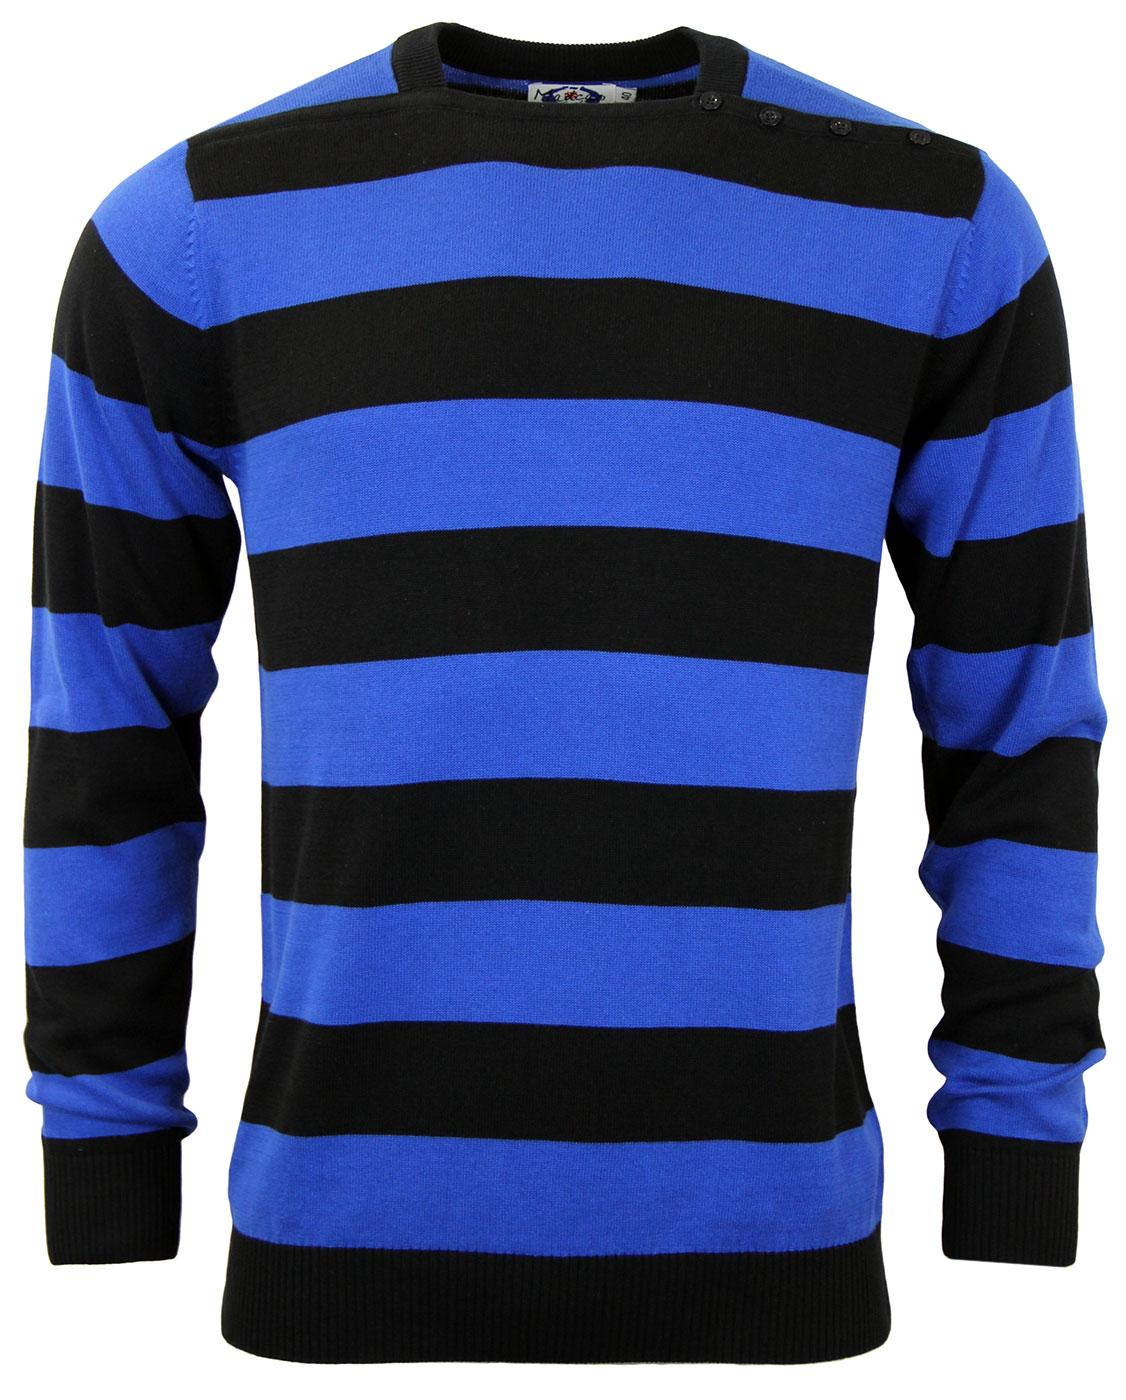 Jones MADCAP ENGLAND Mod Block Stripe Jumper ROYAL